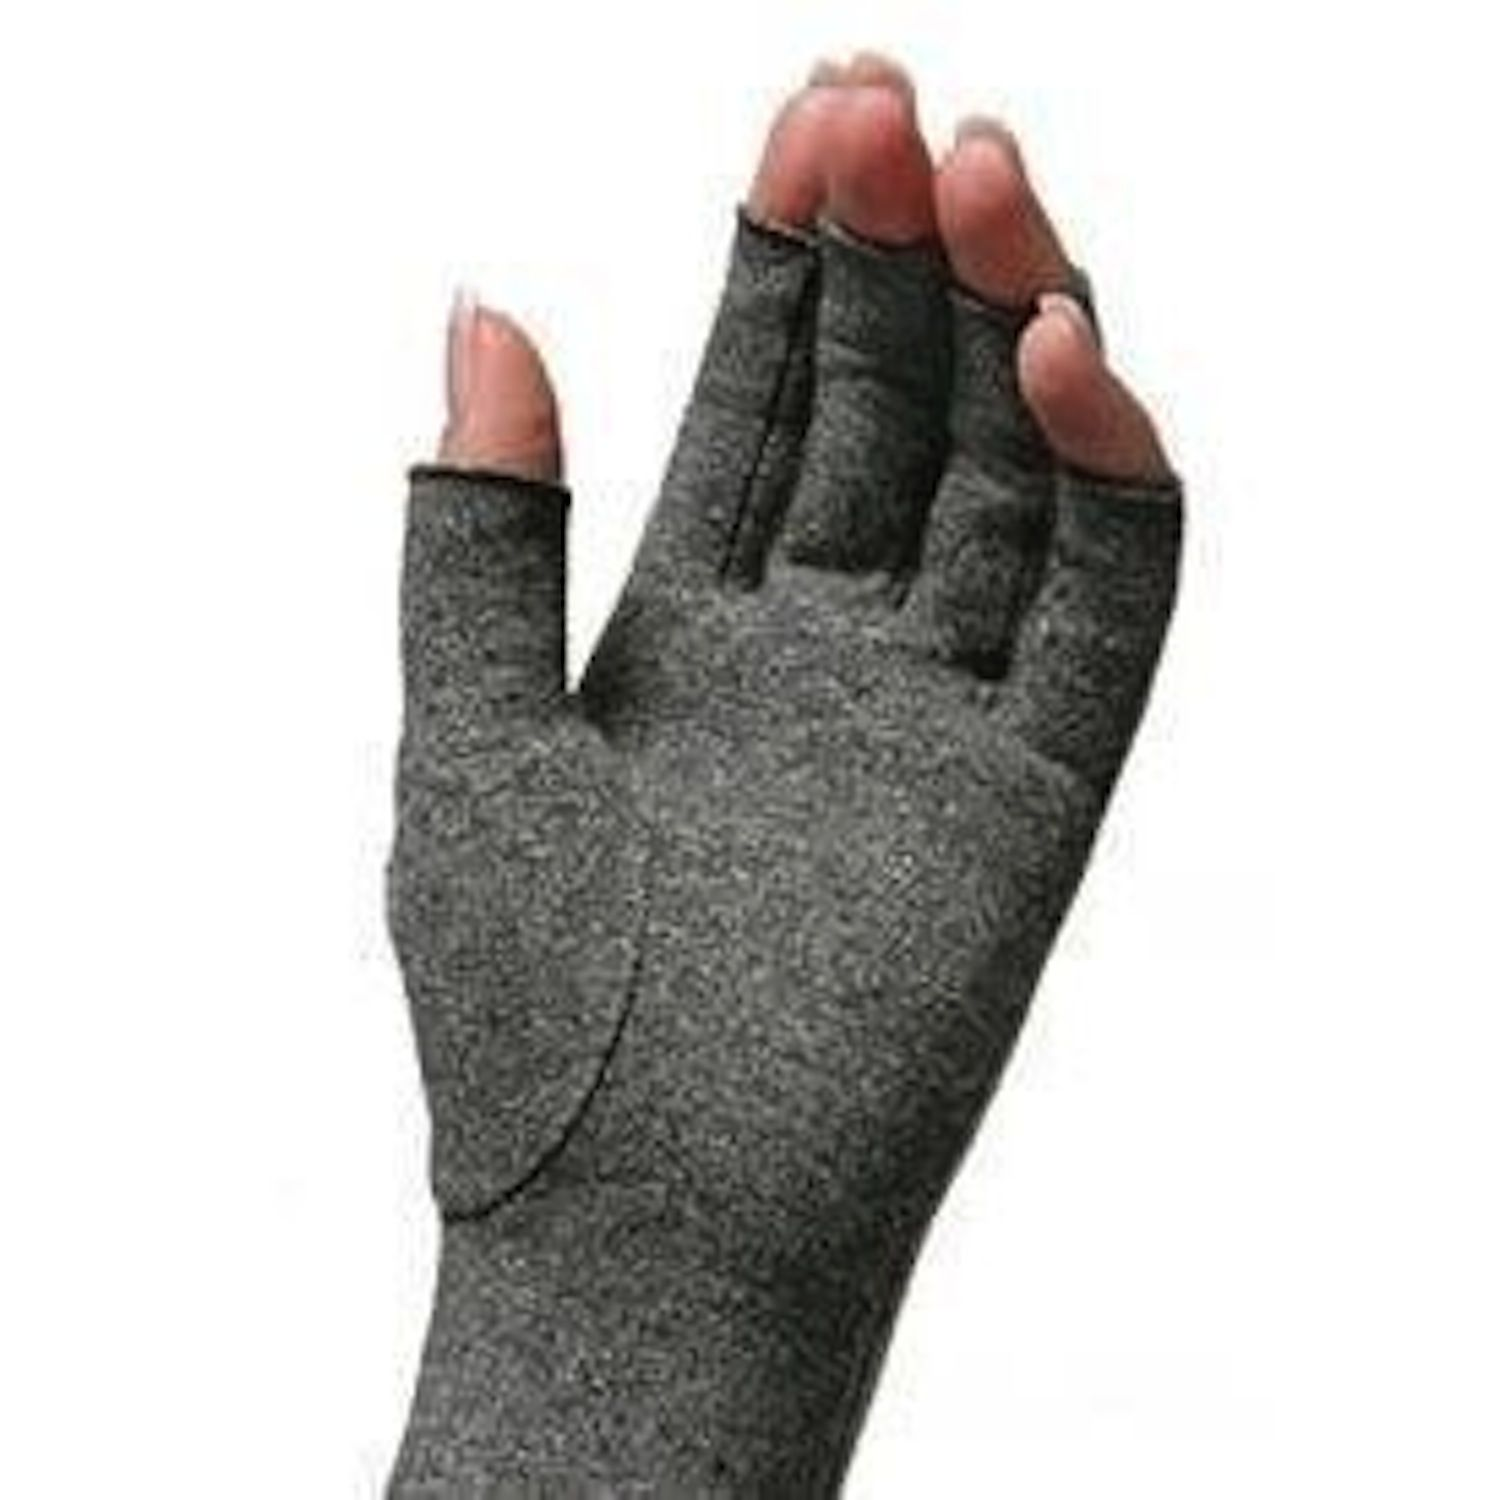 3 Best Arthritis Gloves For Relieving Pain